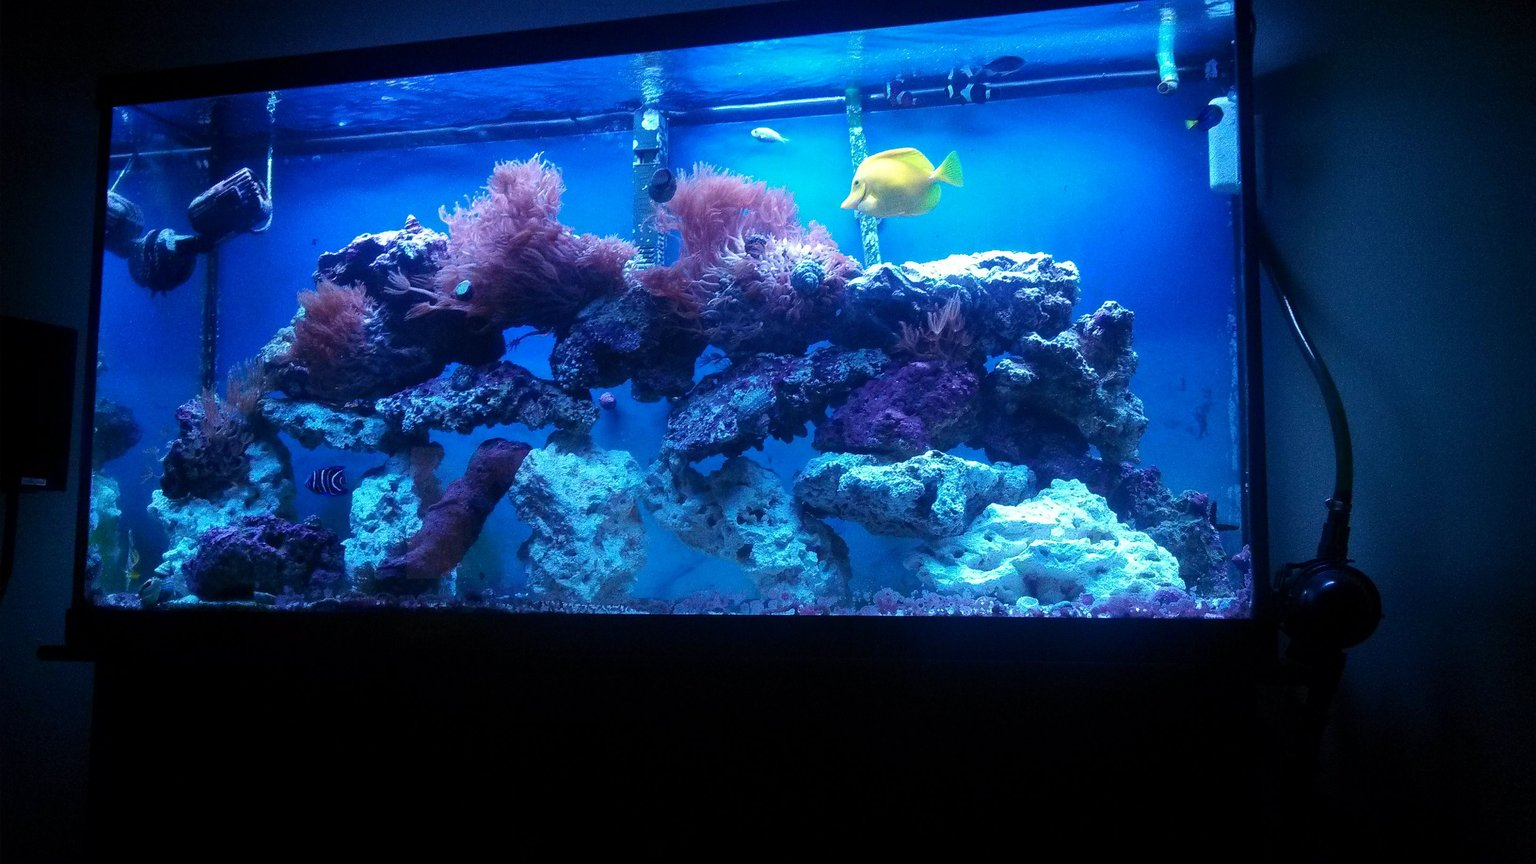 fish tank picture - Let Me Know What You Think